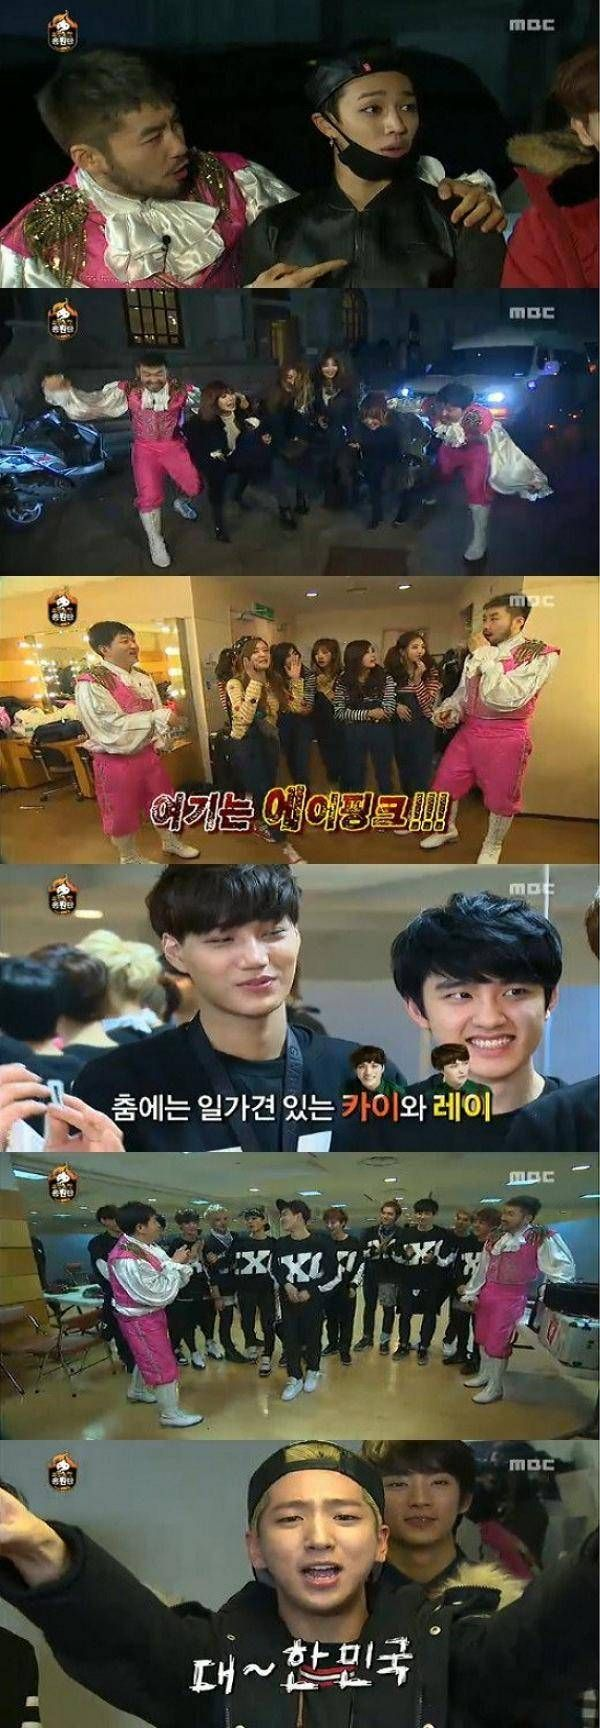 B2ST, 4minute, A Pink, EXO, and B1A4 try out for the cheerleading squad on 'Infinity Challenge' | http://www.allkpop.com/article/2014/01/b2st-4minute-a-pink-exo-and-b1a4-try-out-for-the-cheerleading-squad-on-infinity-challenge